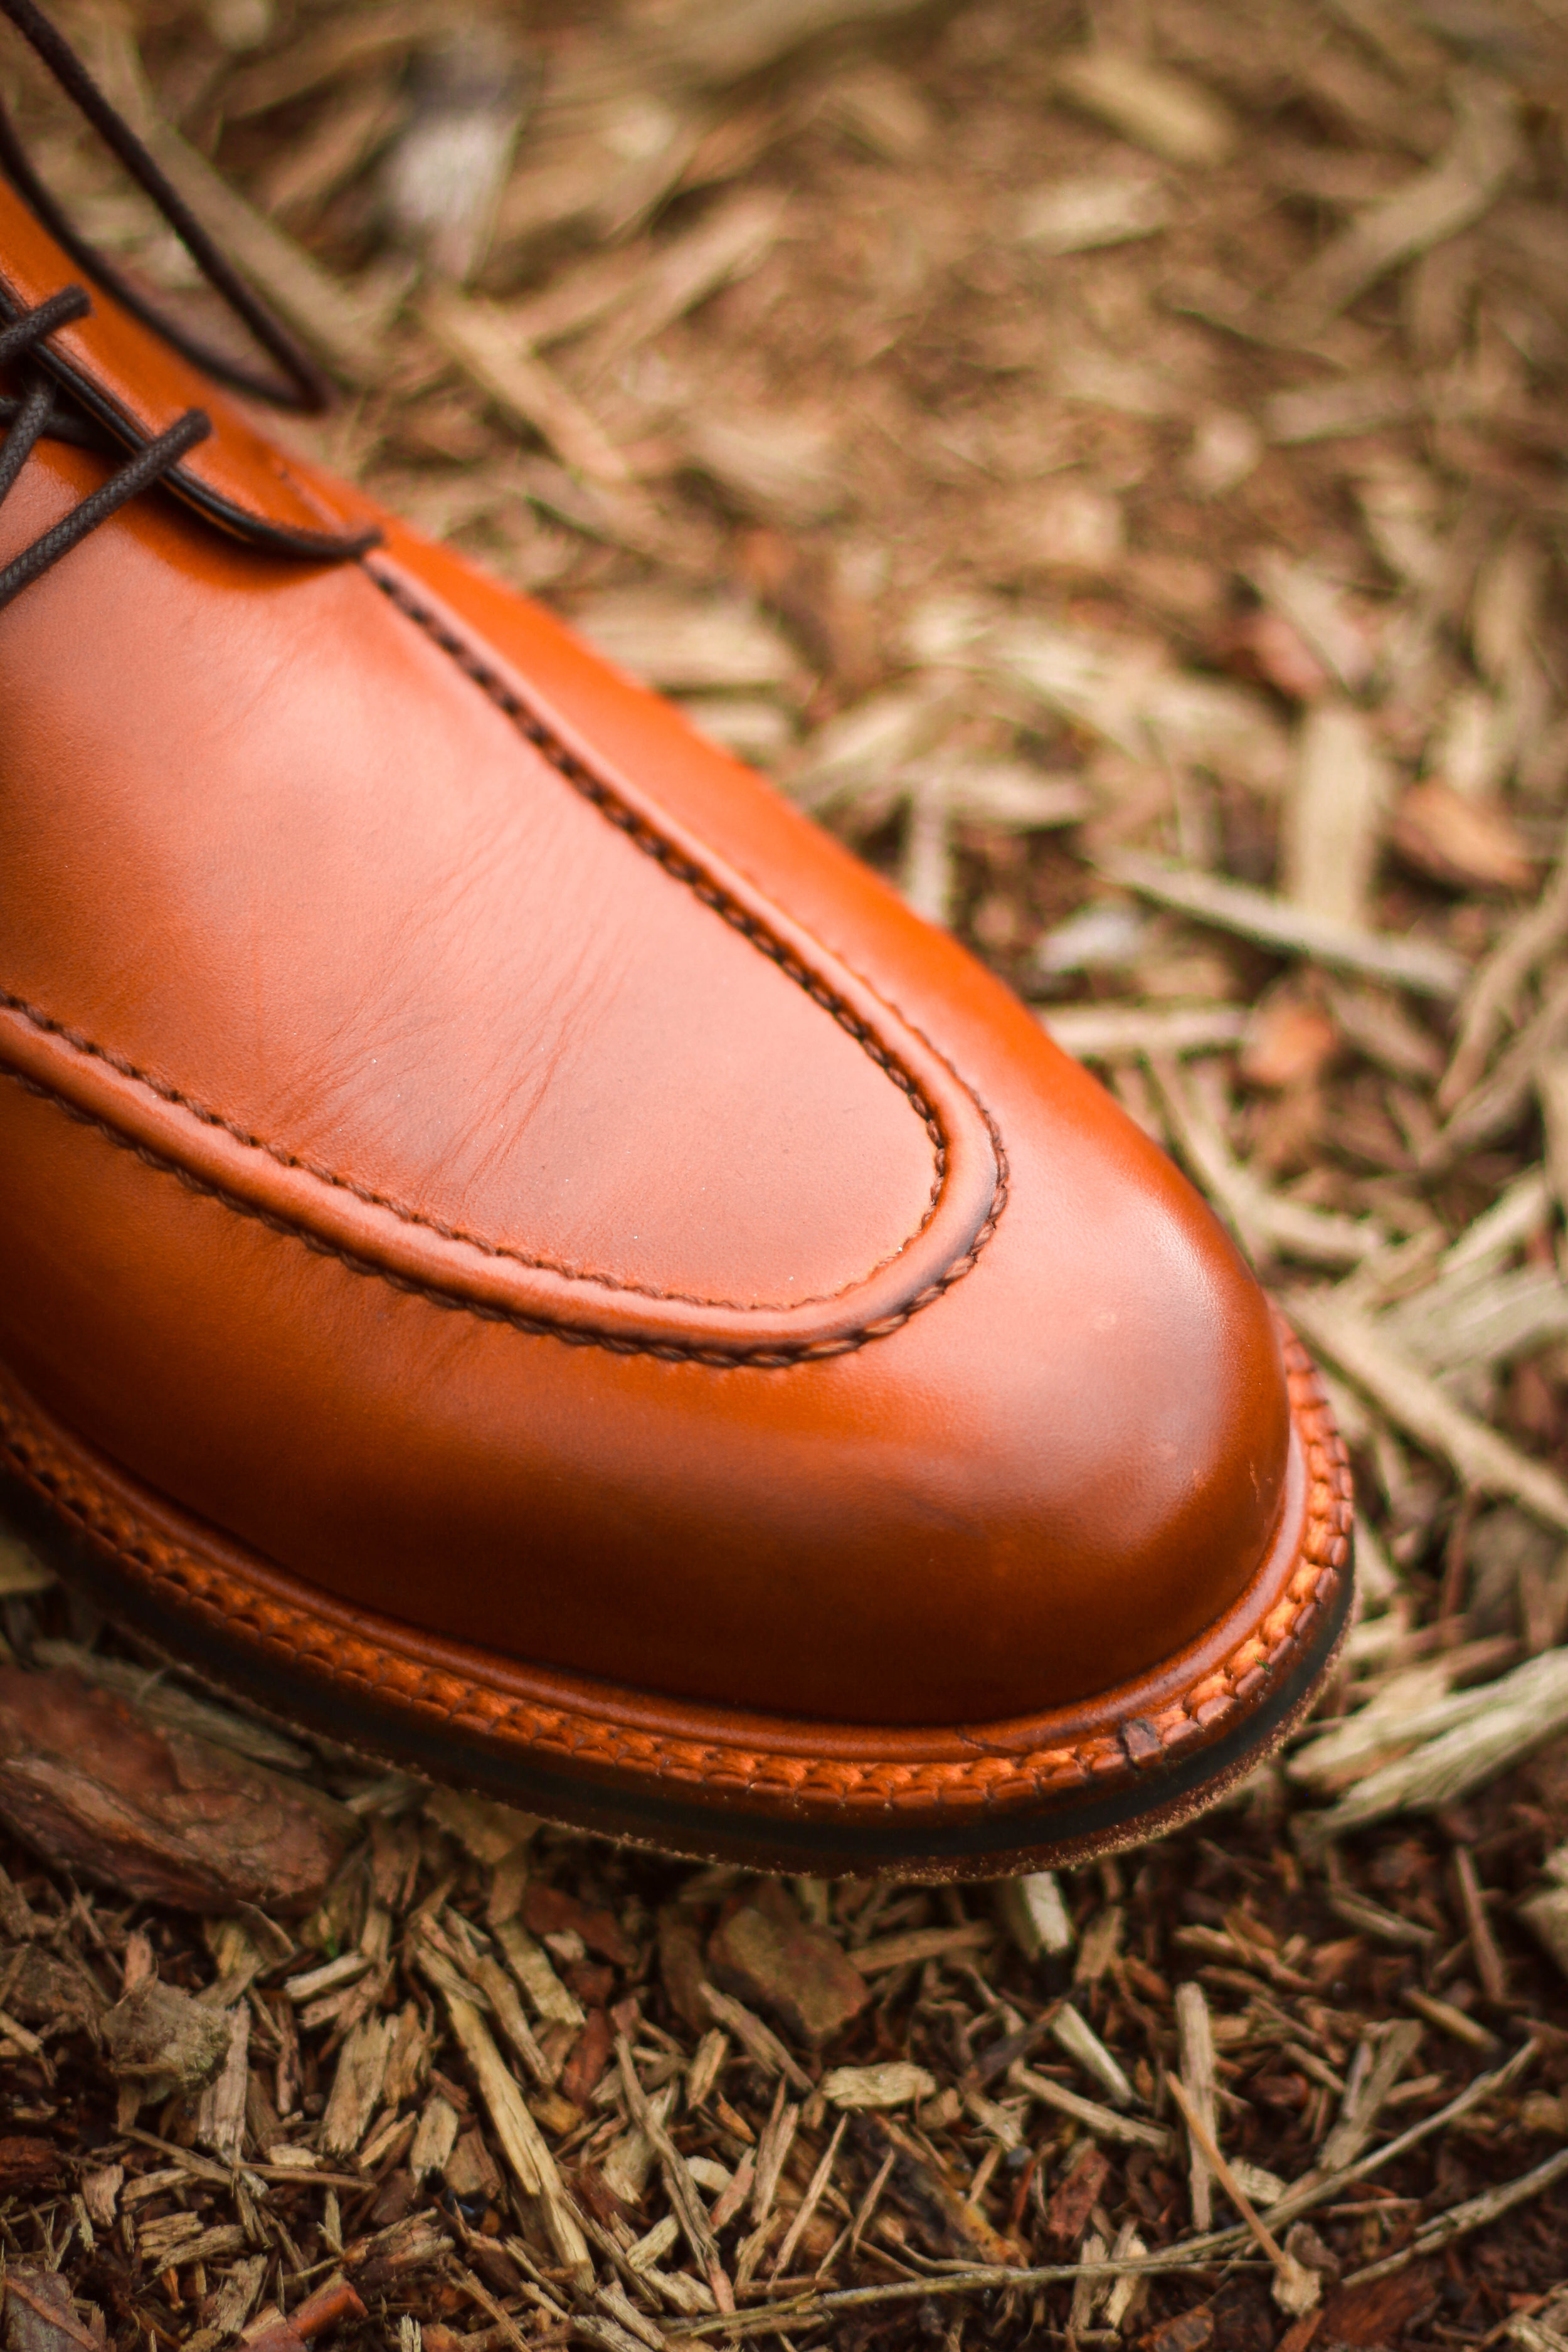 This calfskin leather is high quality and characteristic of a dress boot. Notice that elegant burnishing and welt too.